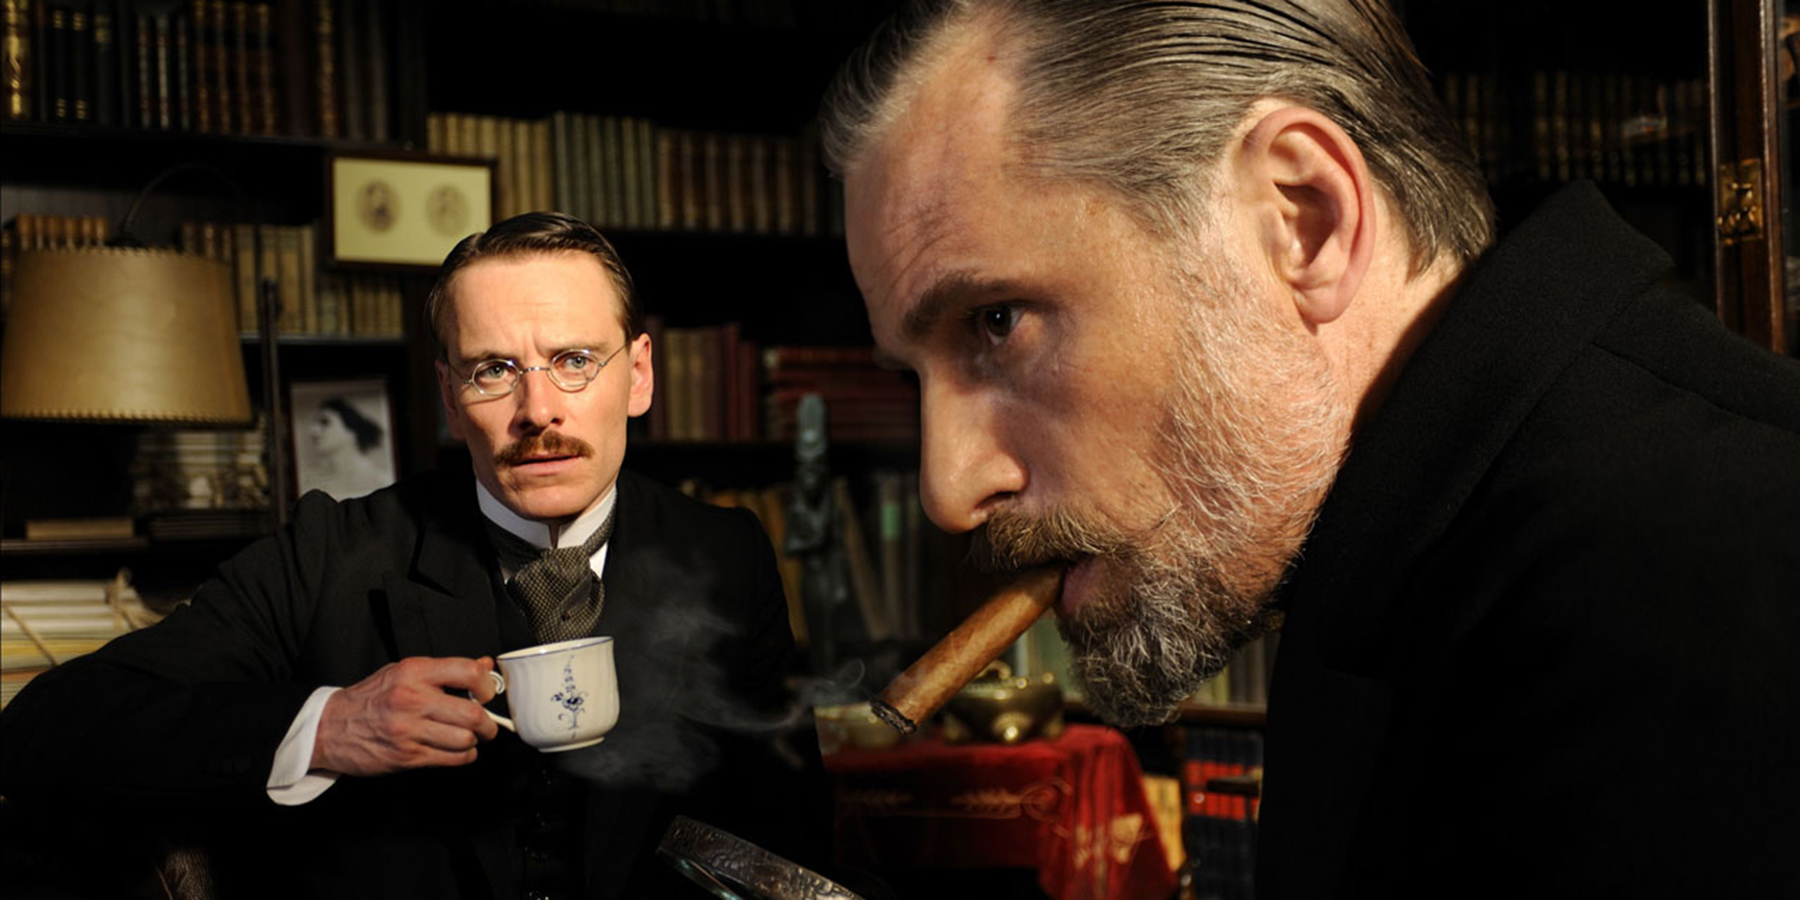 a-dangerous-method_fassMor